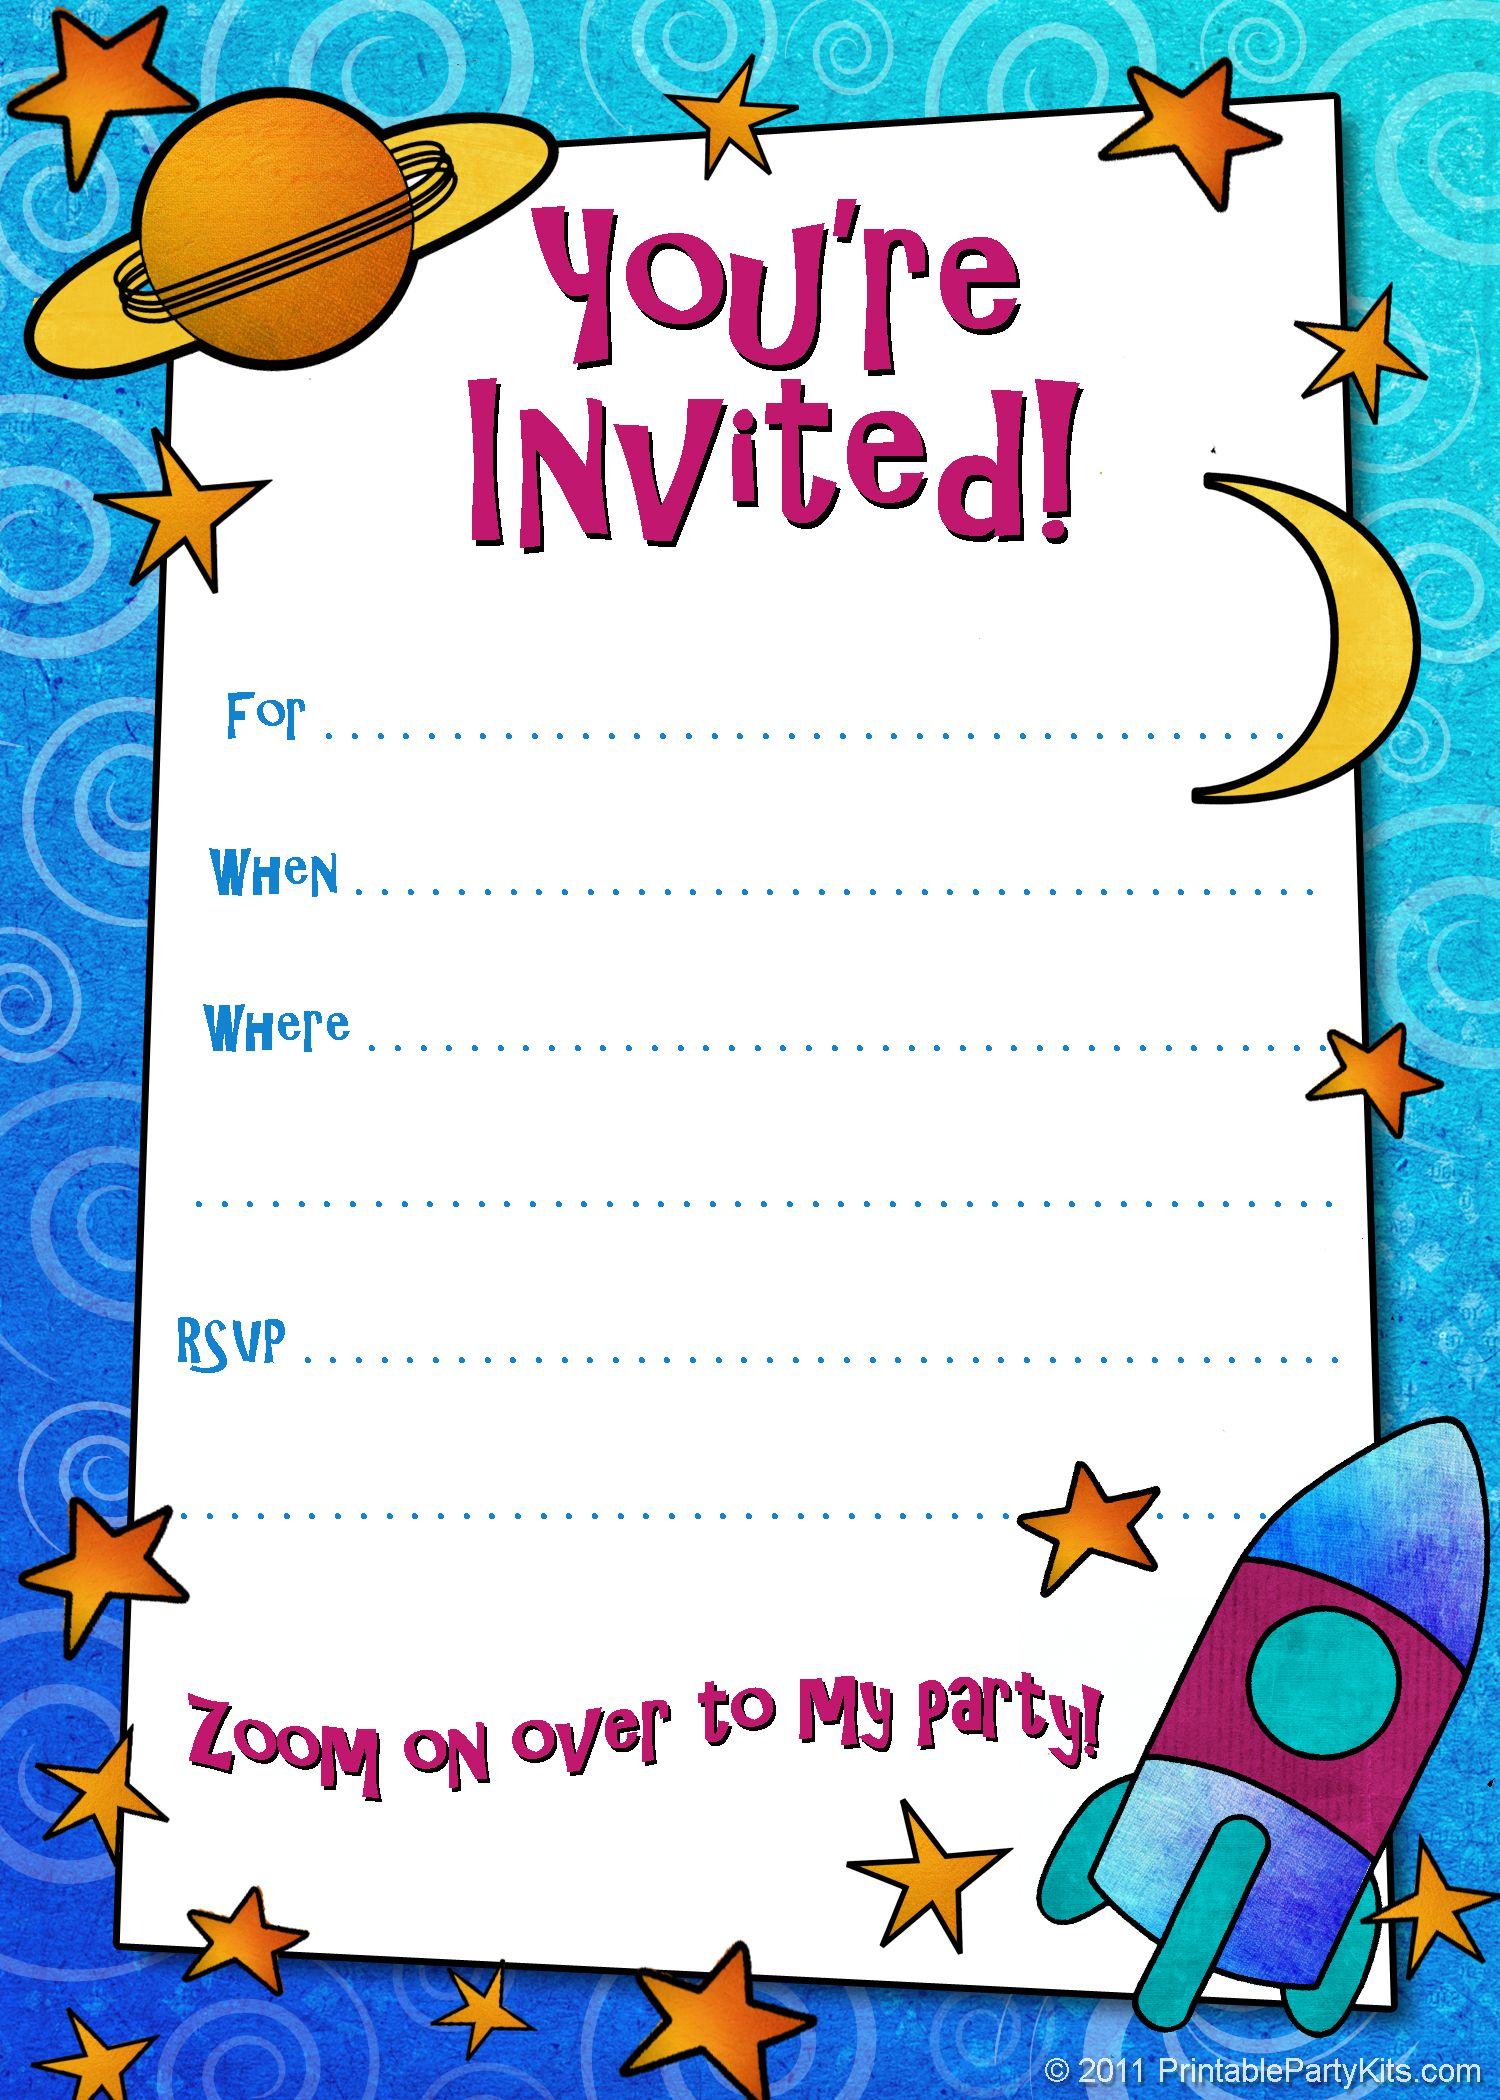 Kid birthday party invitation templates gidiyedformapolitica kid birthday party invitation templates stopboris